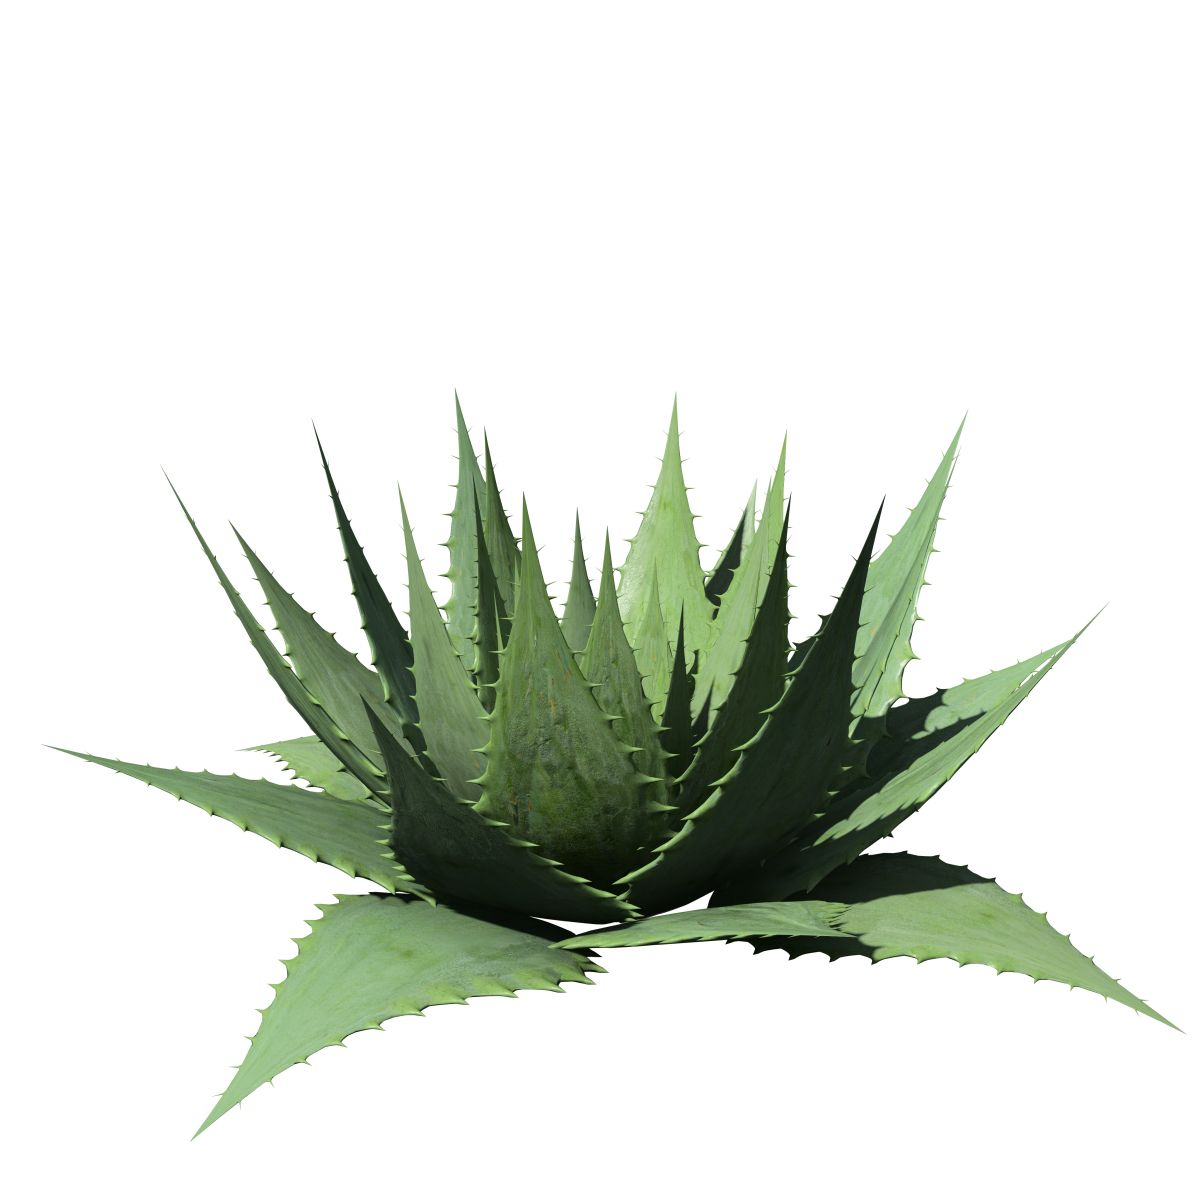 aloe vera species pack speedtree. Black Bedroom Furniture Sets. Home Design Ideas